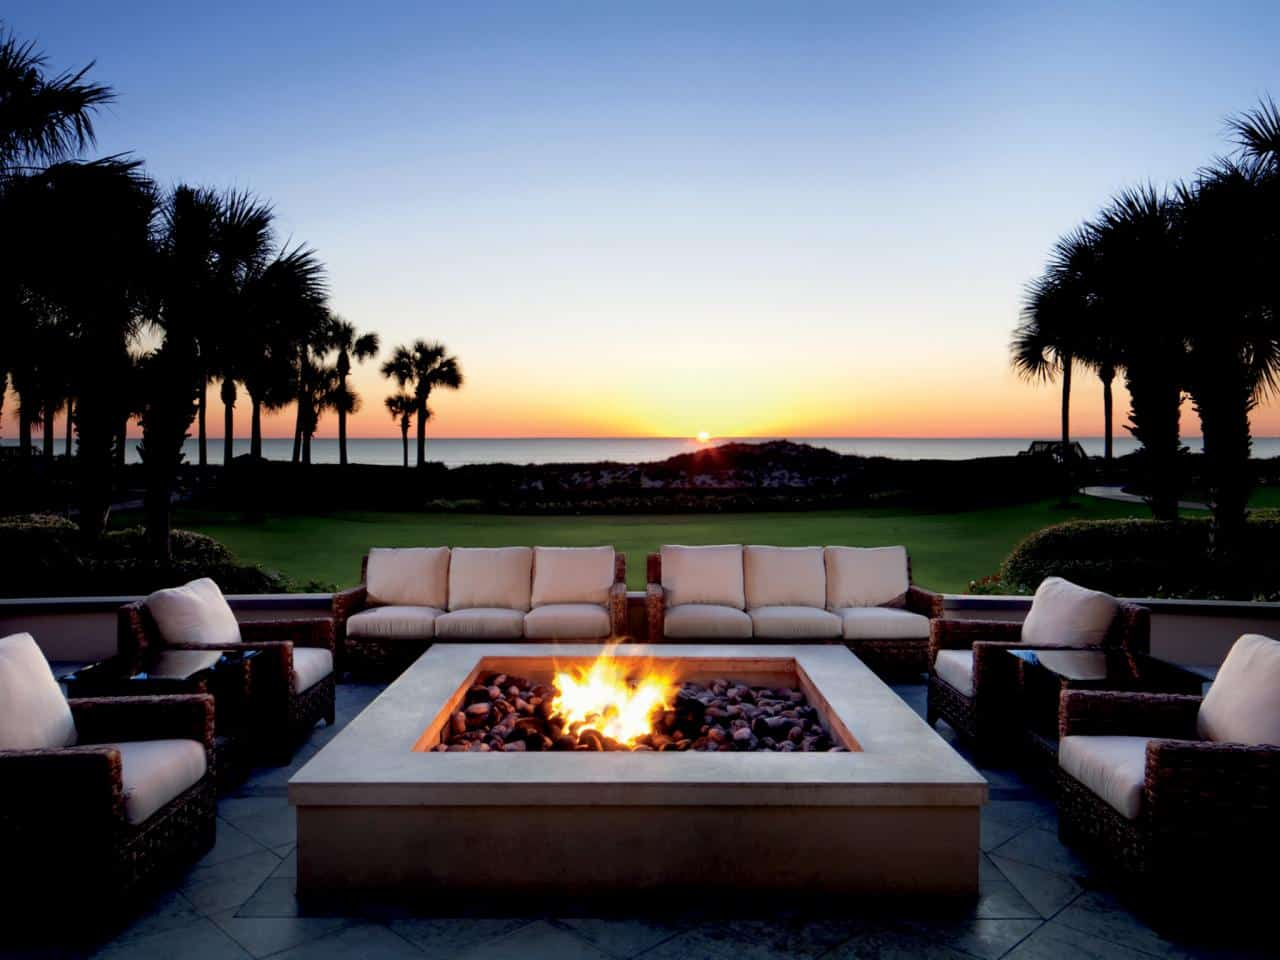 fire pit in patio